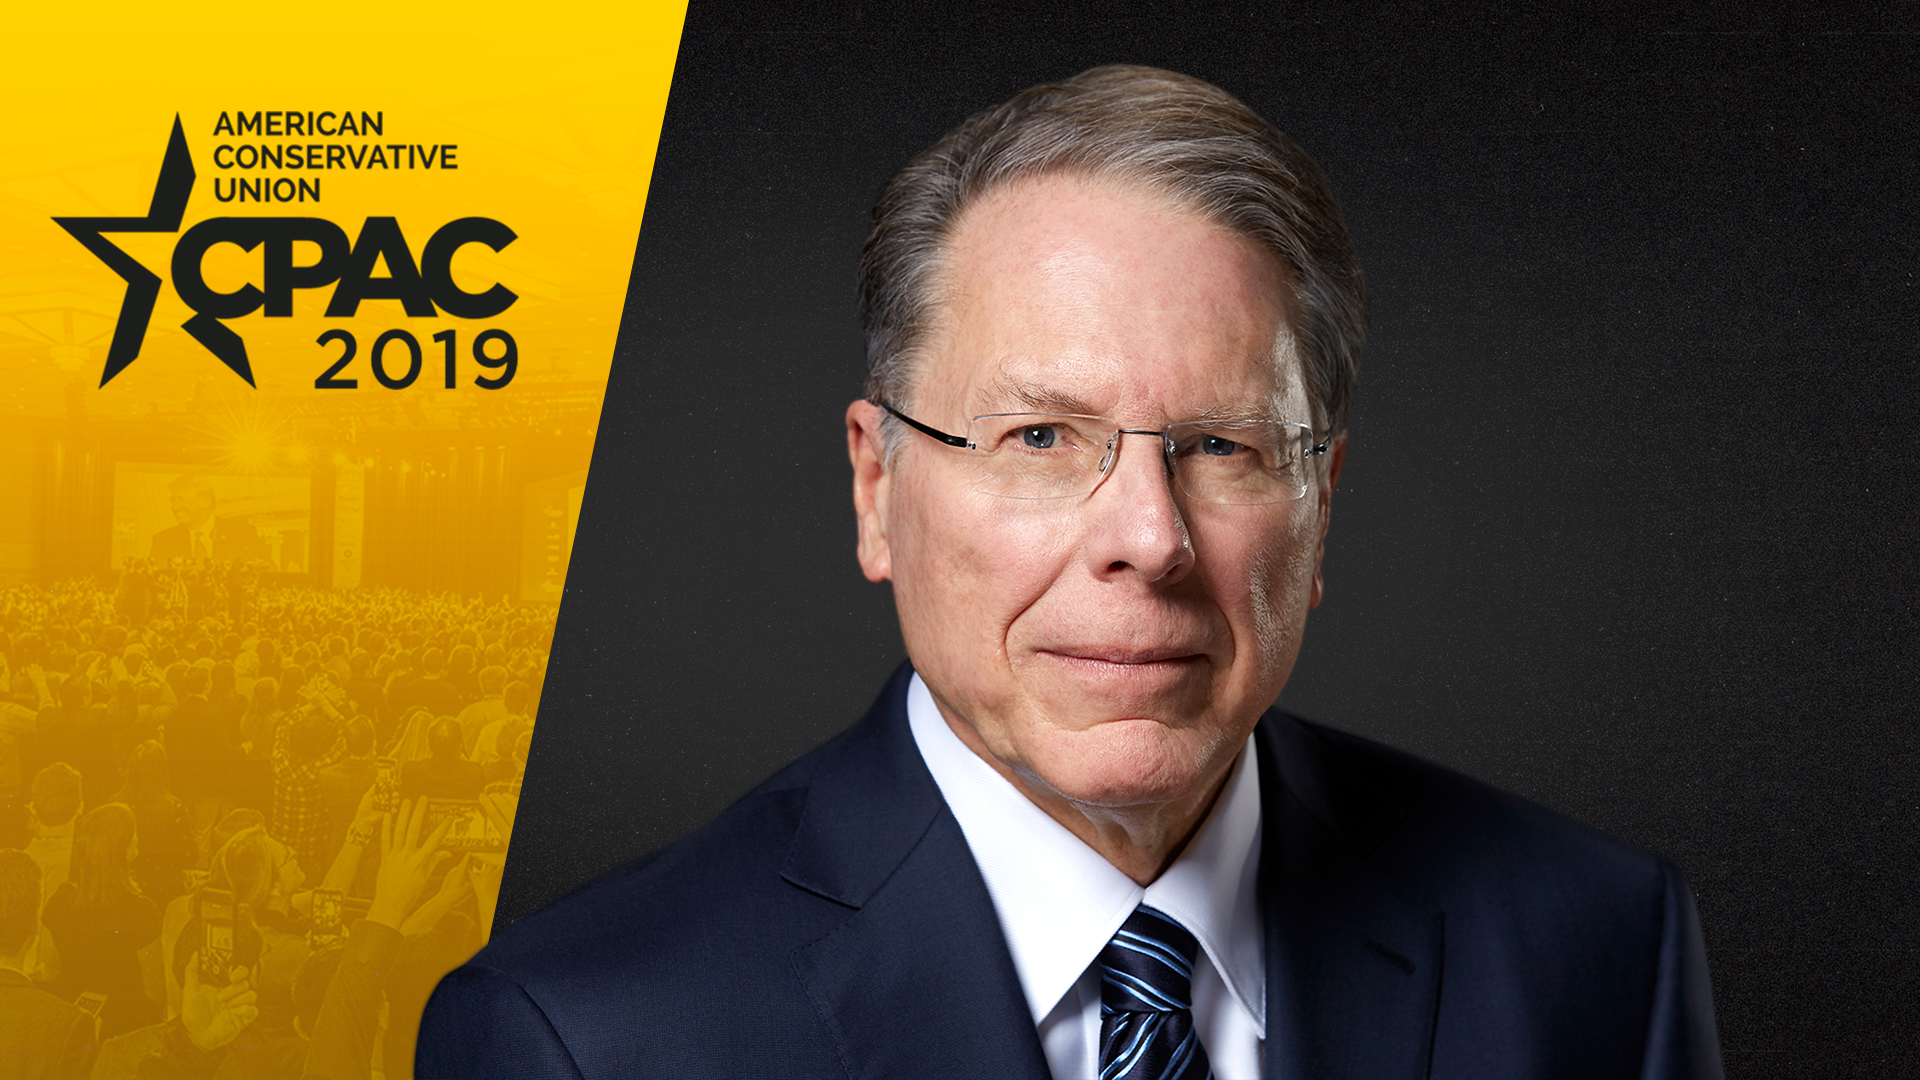 WATCH ▶ Wayne LaPierre's Speech at CPAC